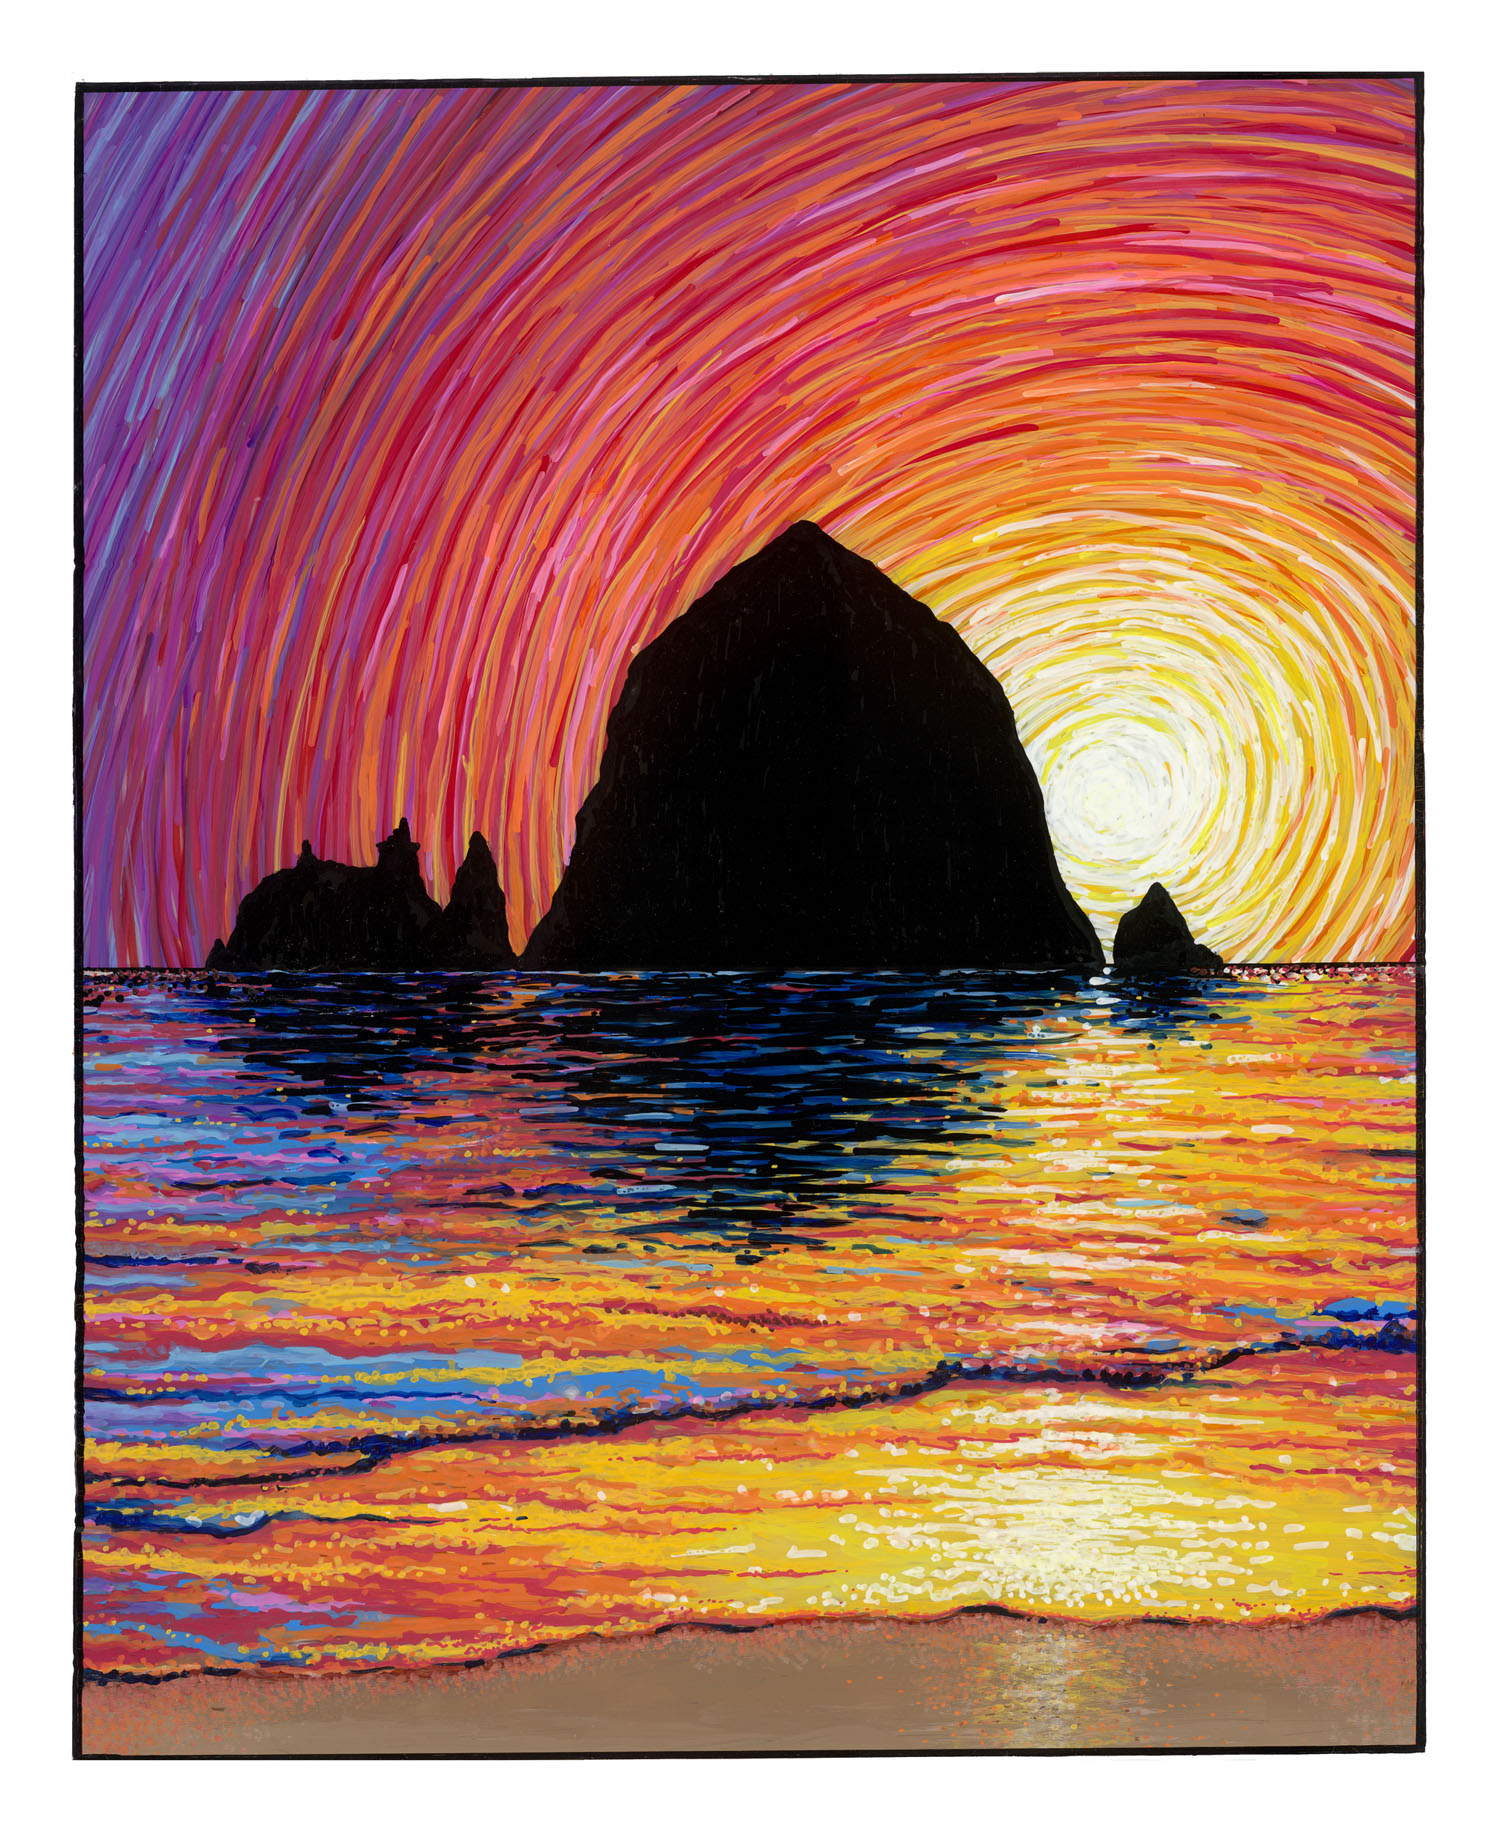 Sunset Cannon Beach 150dpi.jpg